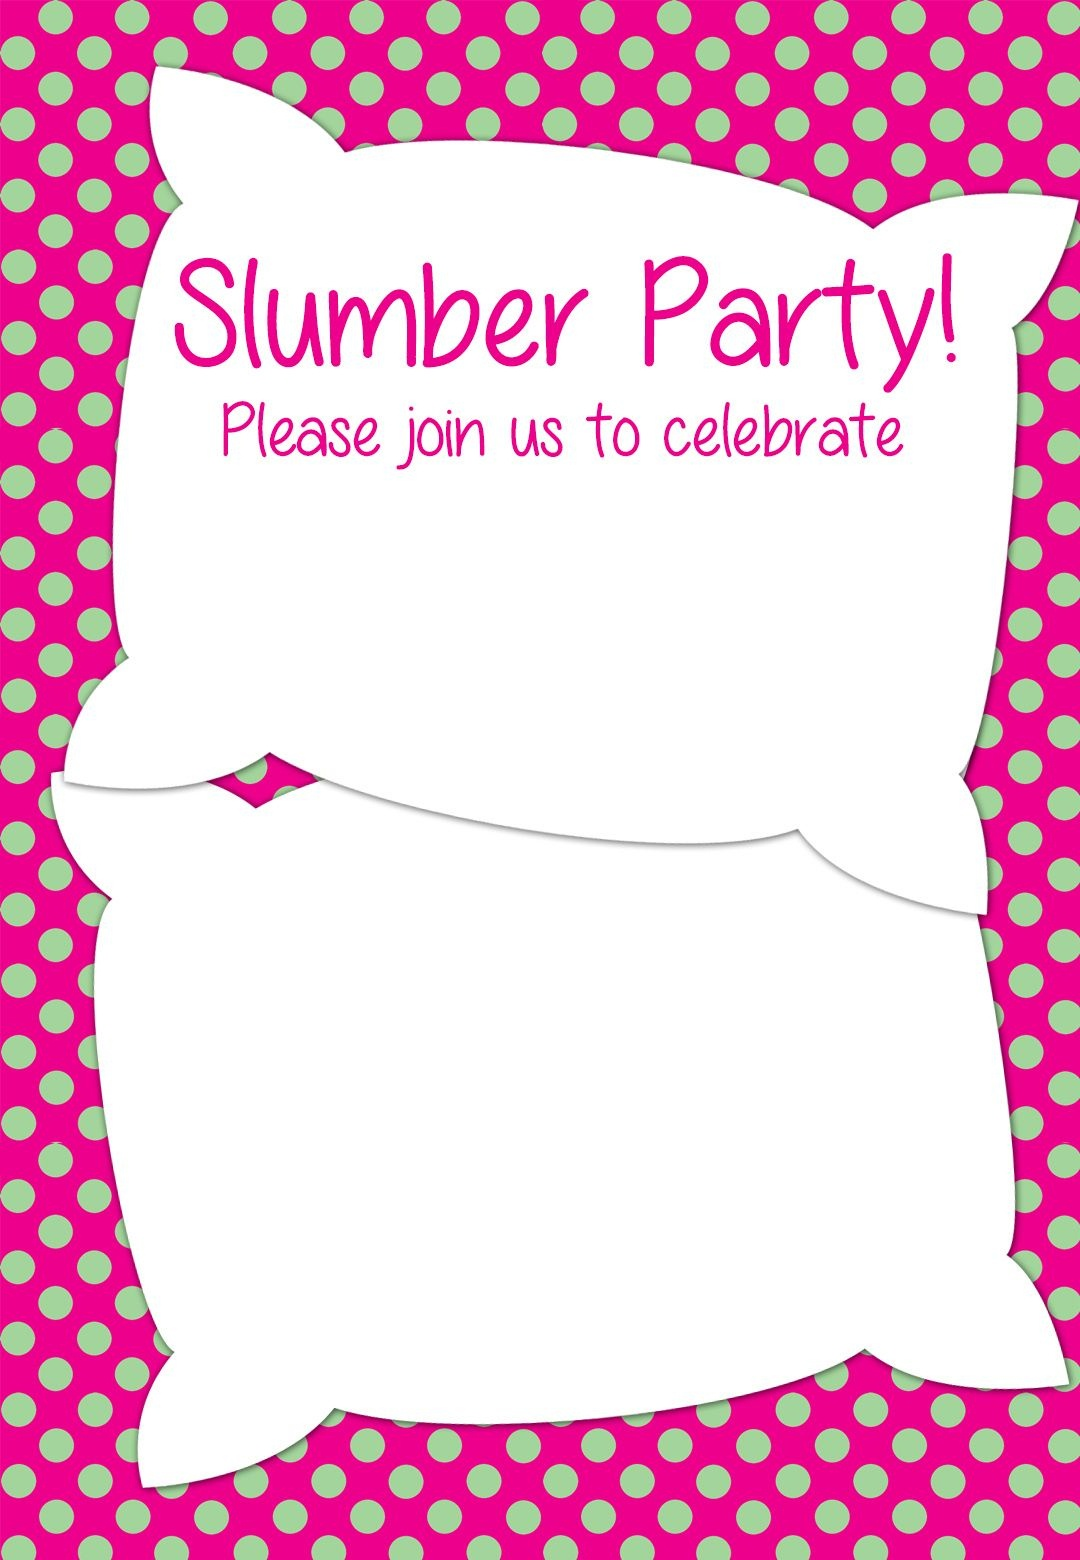 Free Printable Slumber Party Invitation | Party Ideas In 2019 - Free Printable Birthday Invitations Pinterest